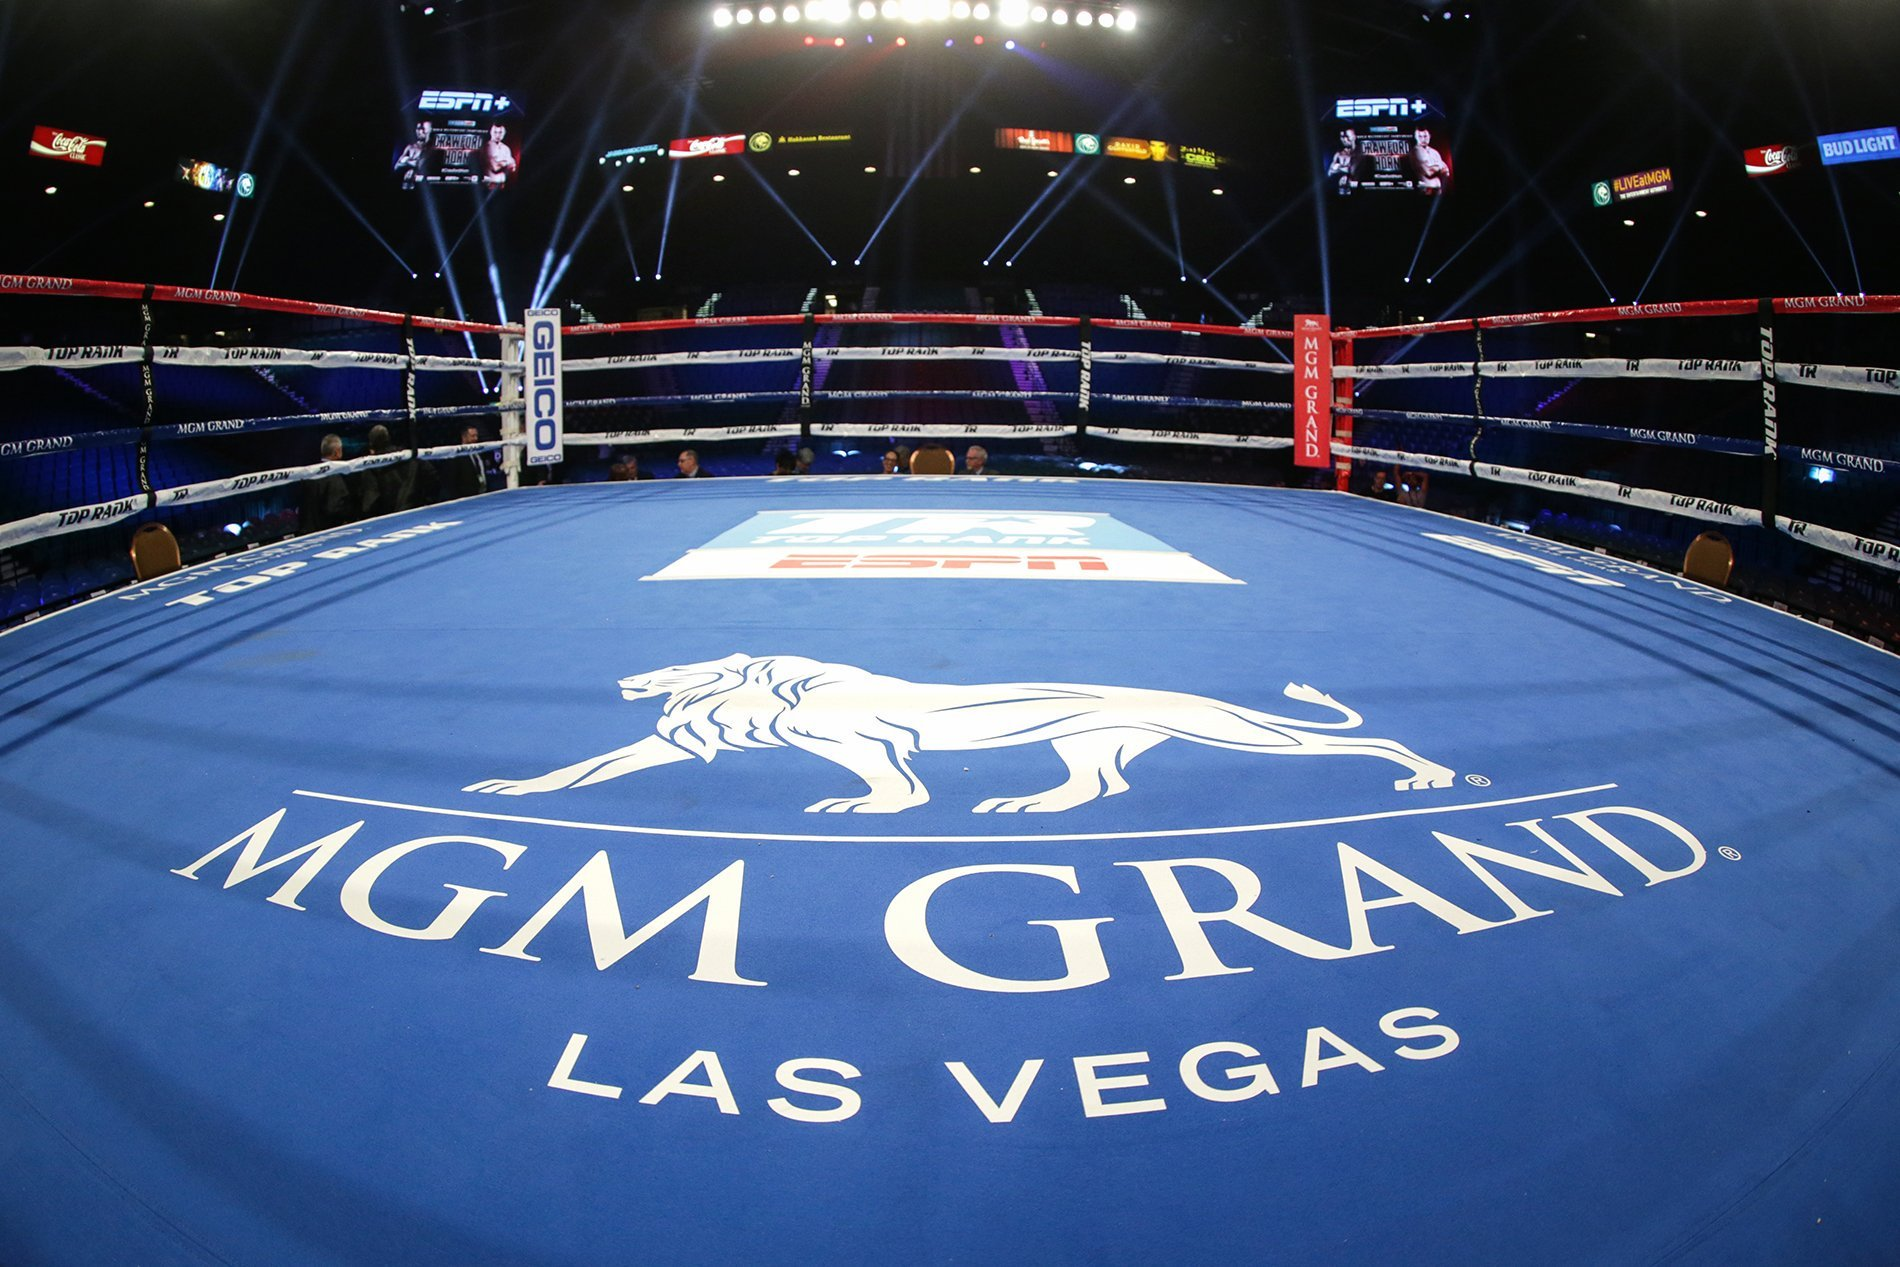 - Once the undisputed, and untouchable Mecca of boxing, Las Vegas dominated the boxing scene for many years – in the 1980s and 1990s in particular. Still, commanding many millions of dollars and plenty of the big fights, Vegas has seen competition from places like Saudi Arabia, Europe and of course New York.